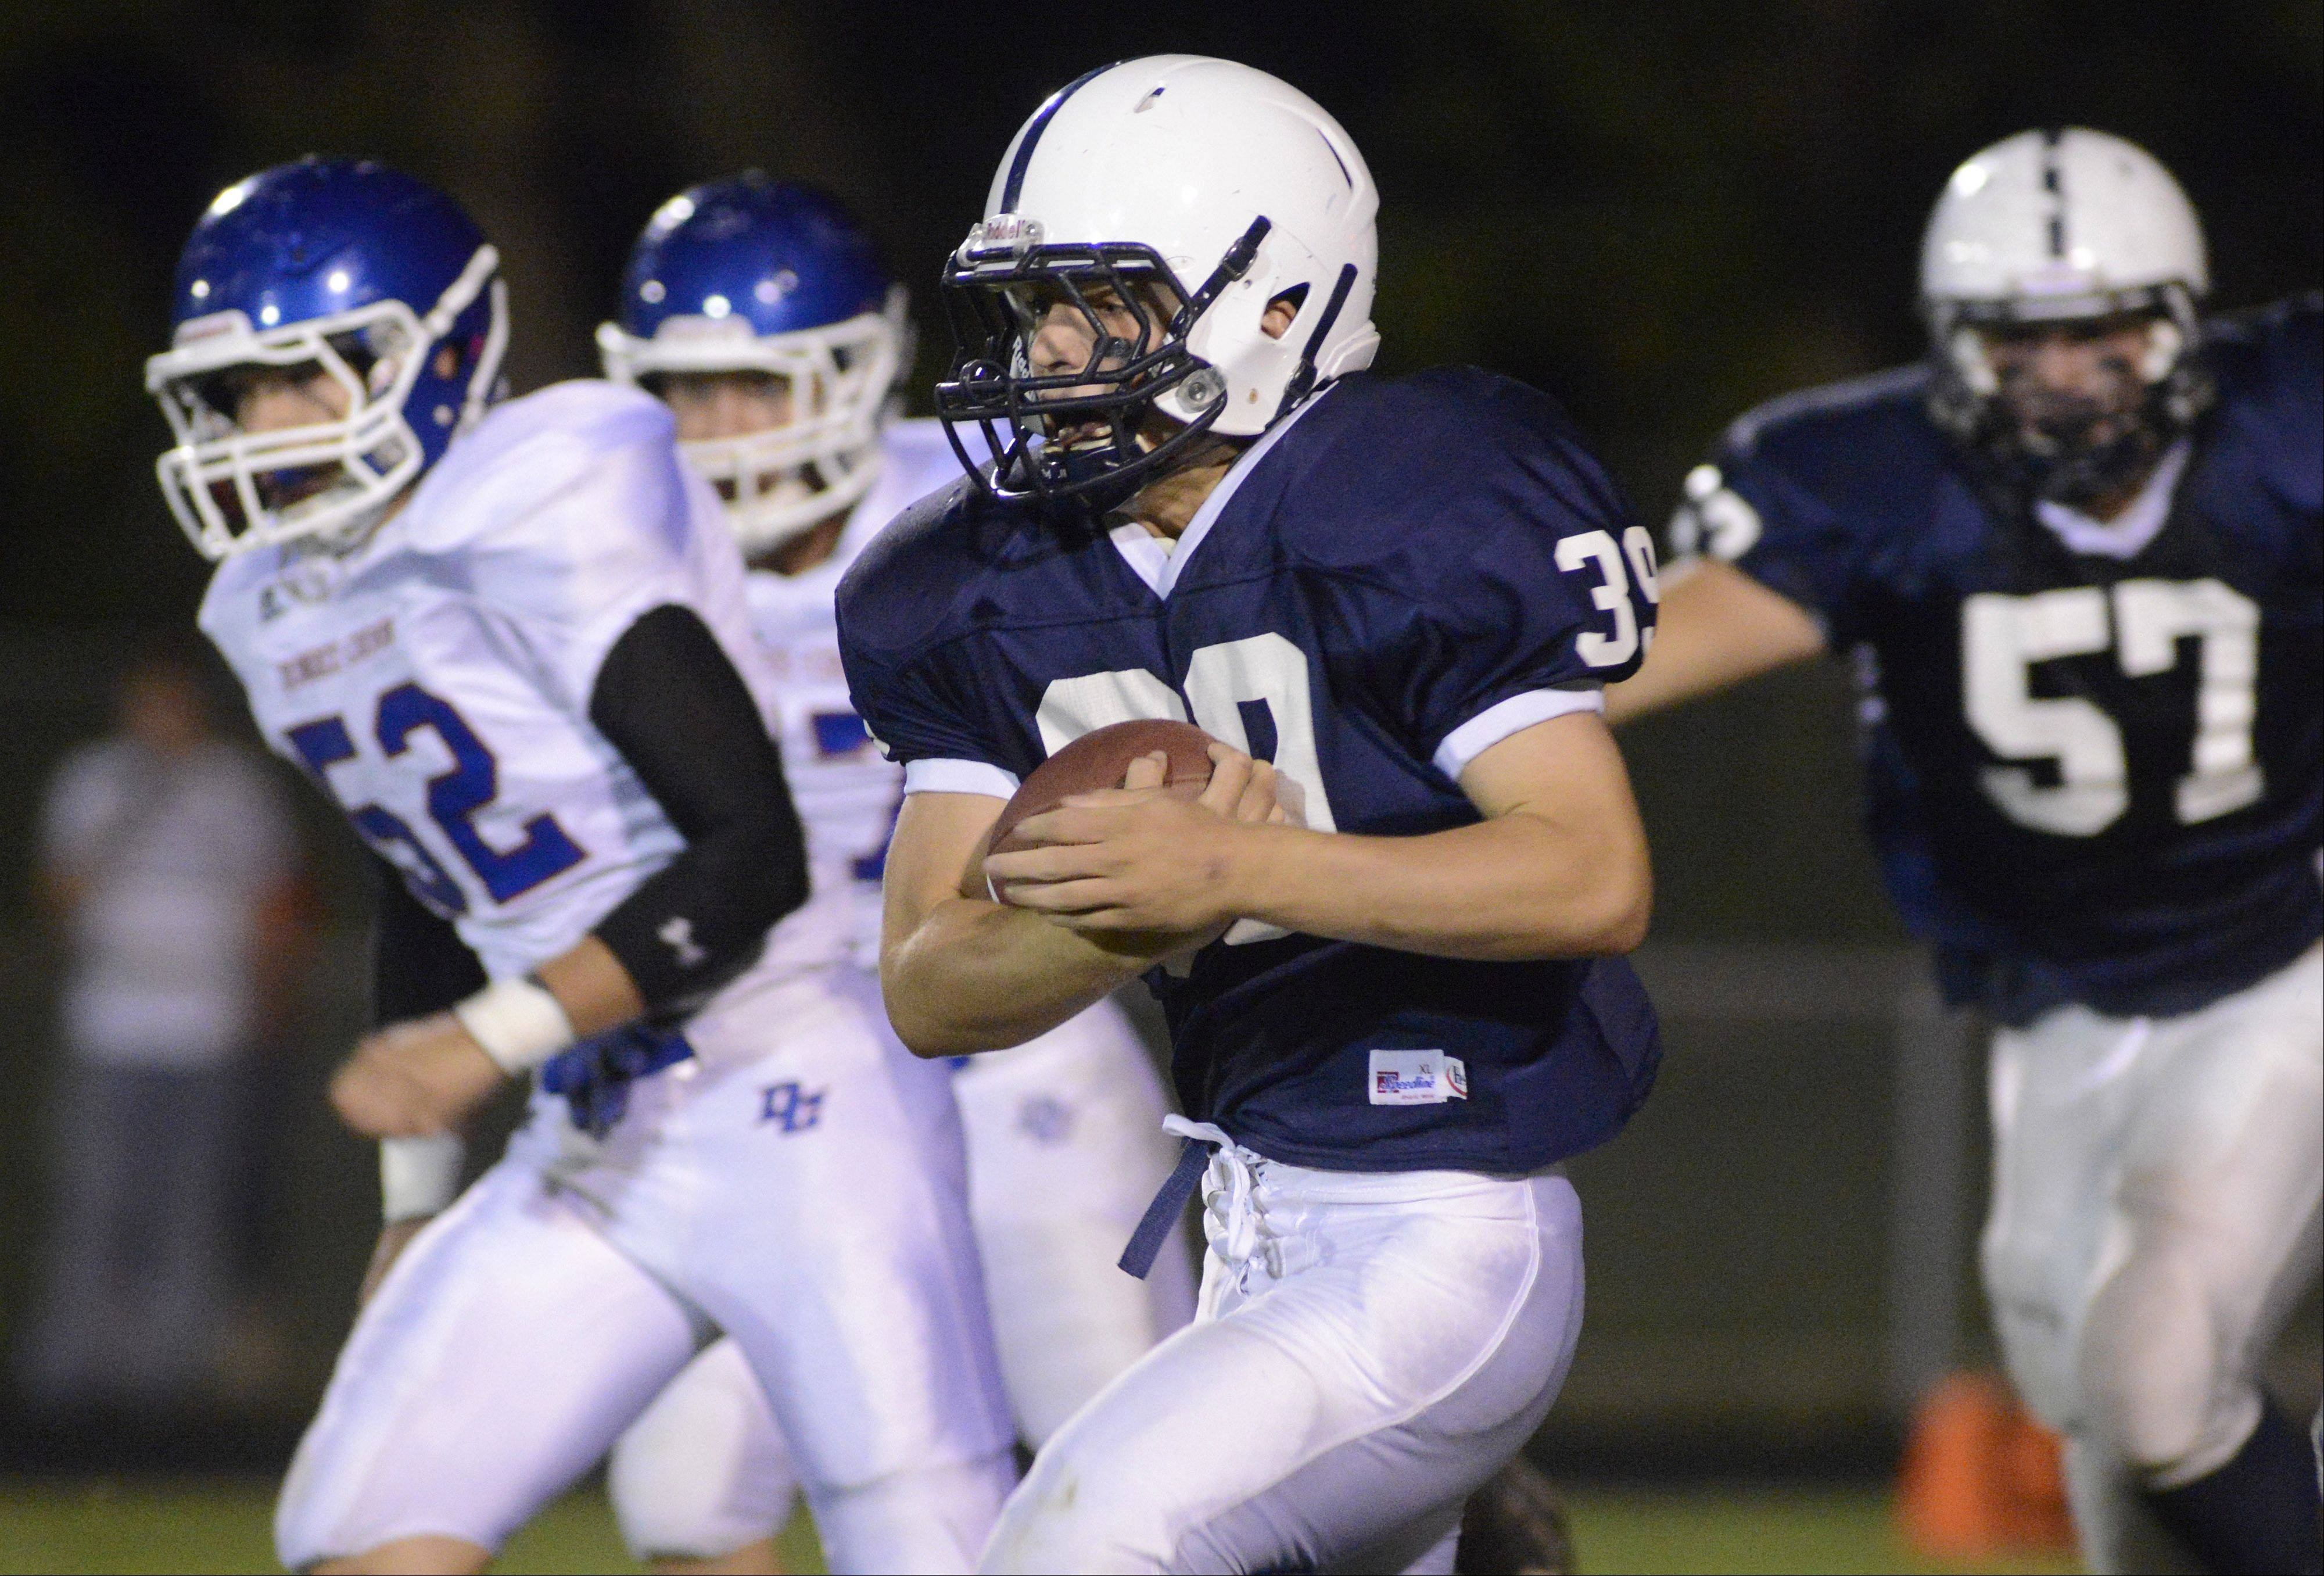 Images: Dundee-Crown vs. Cary-Grove football